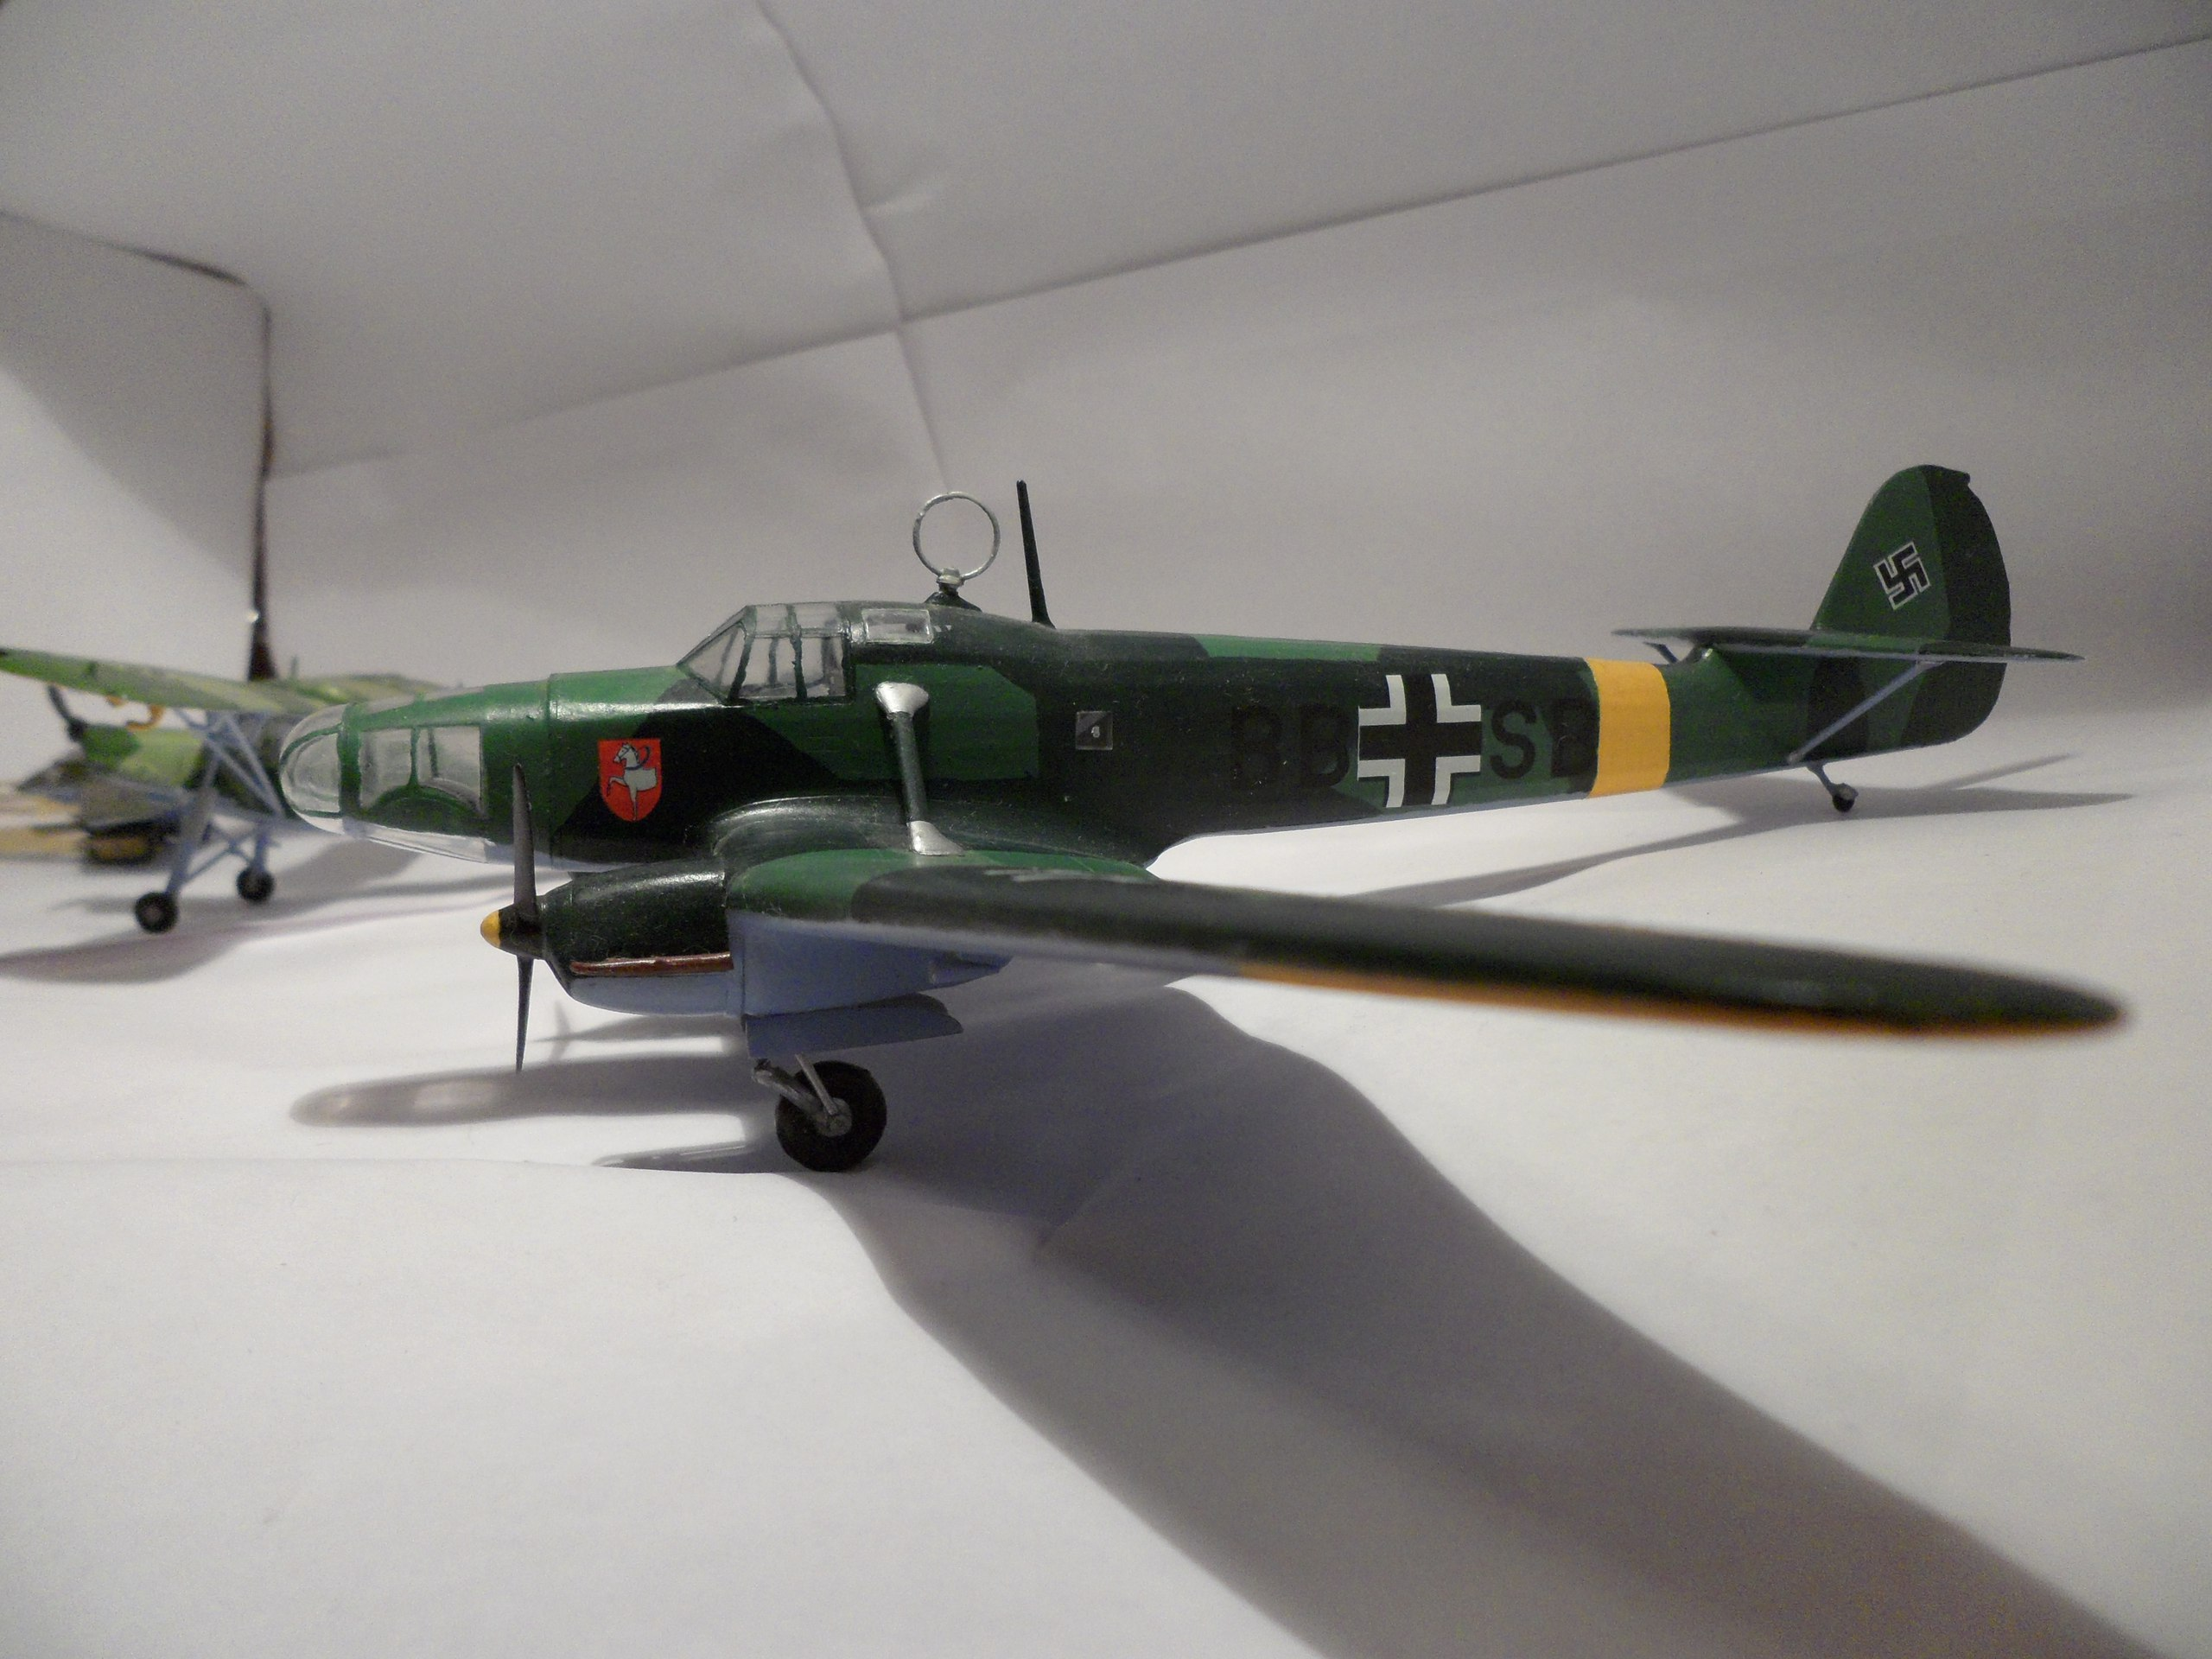 FW - 58C weihe 1/72 (Special Hobby) -H4wGn_JdGg